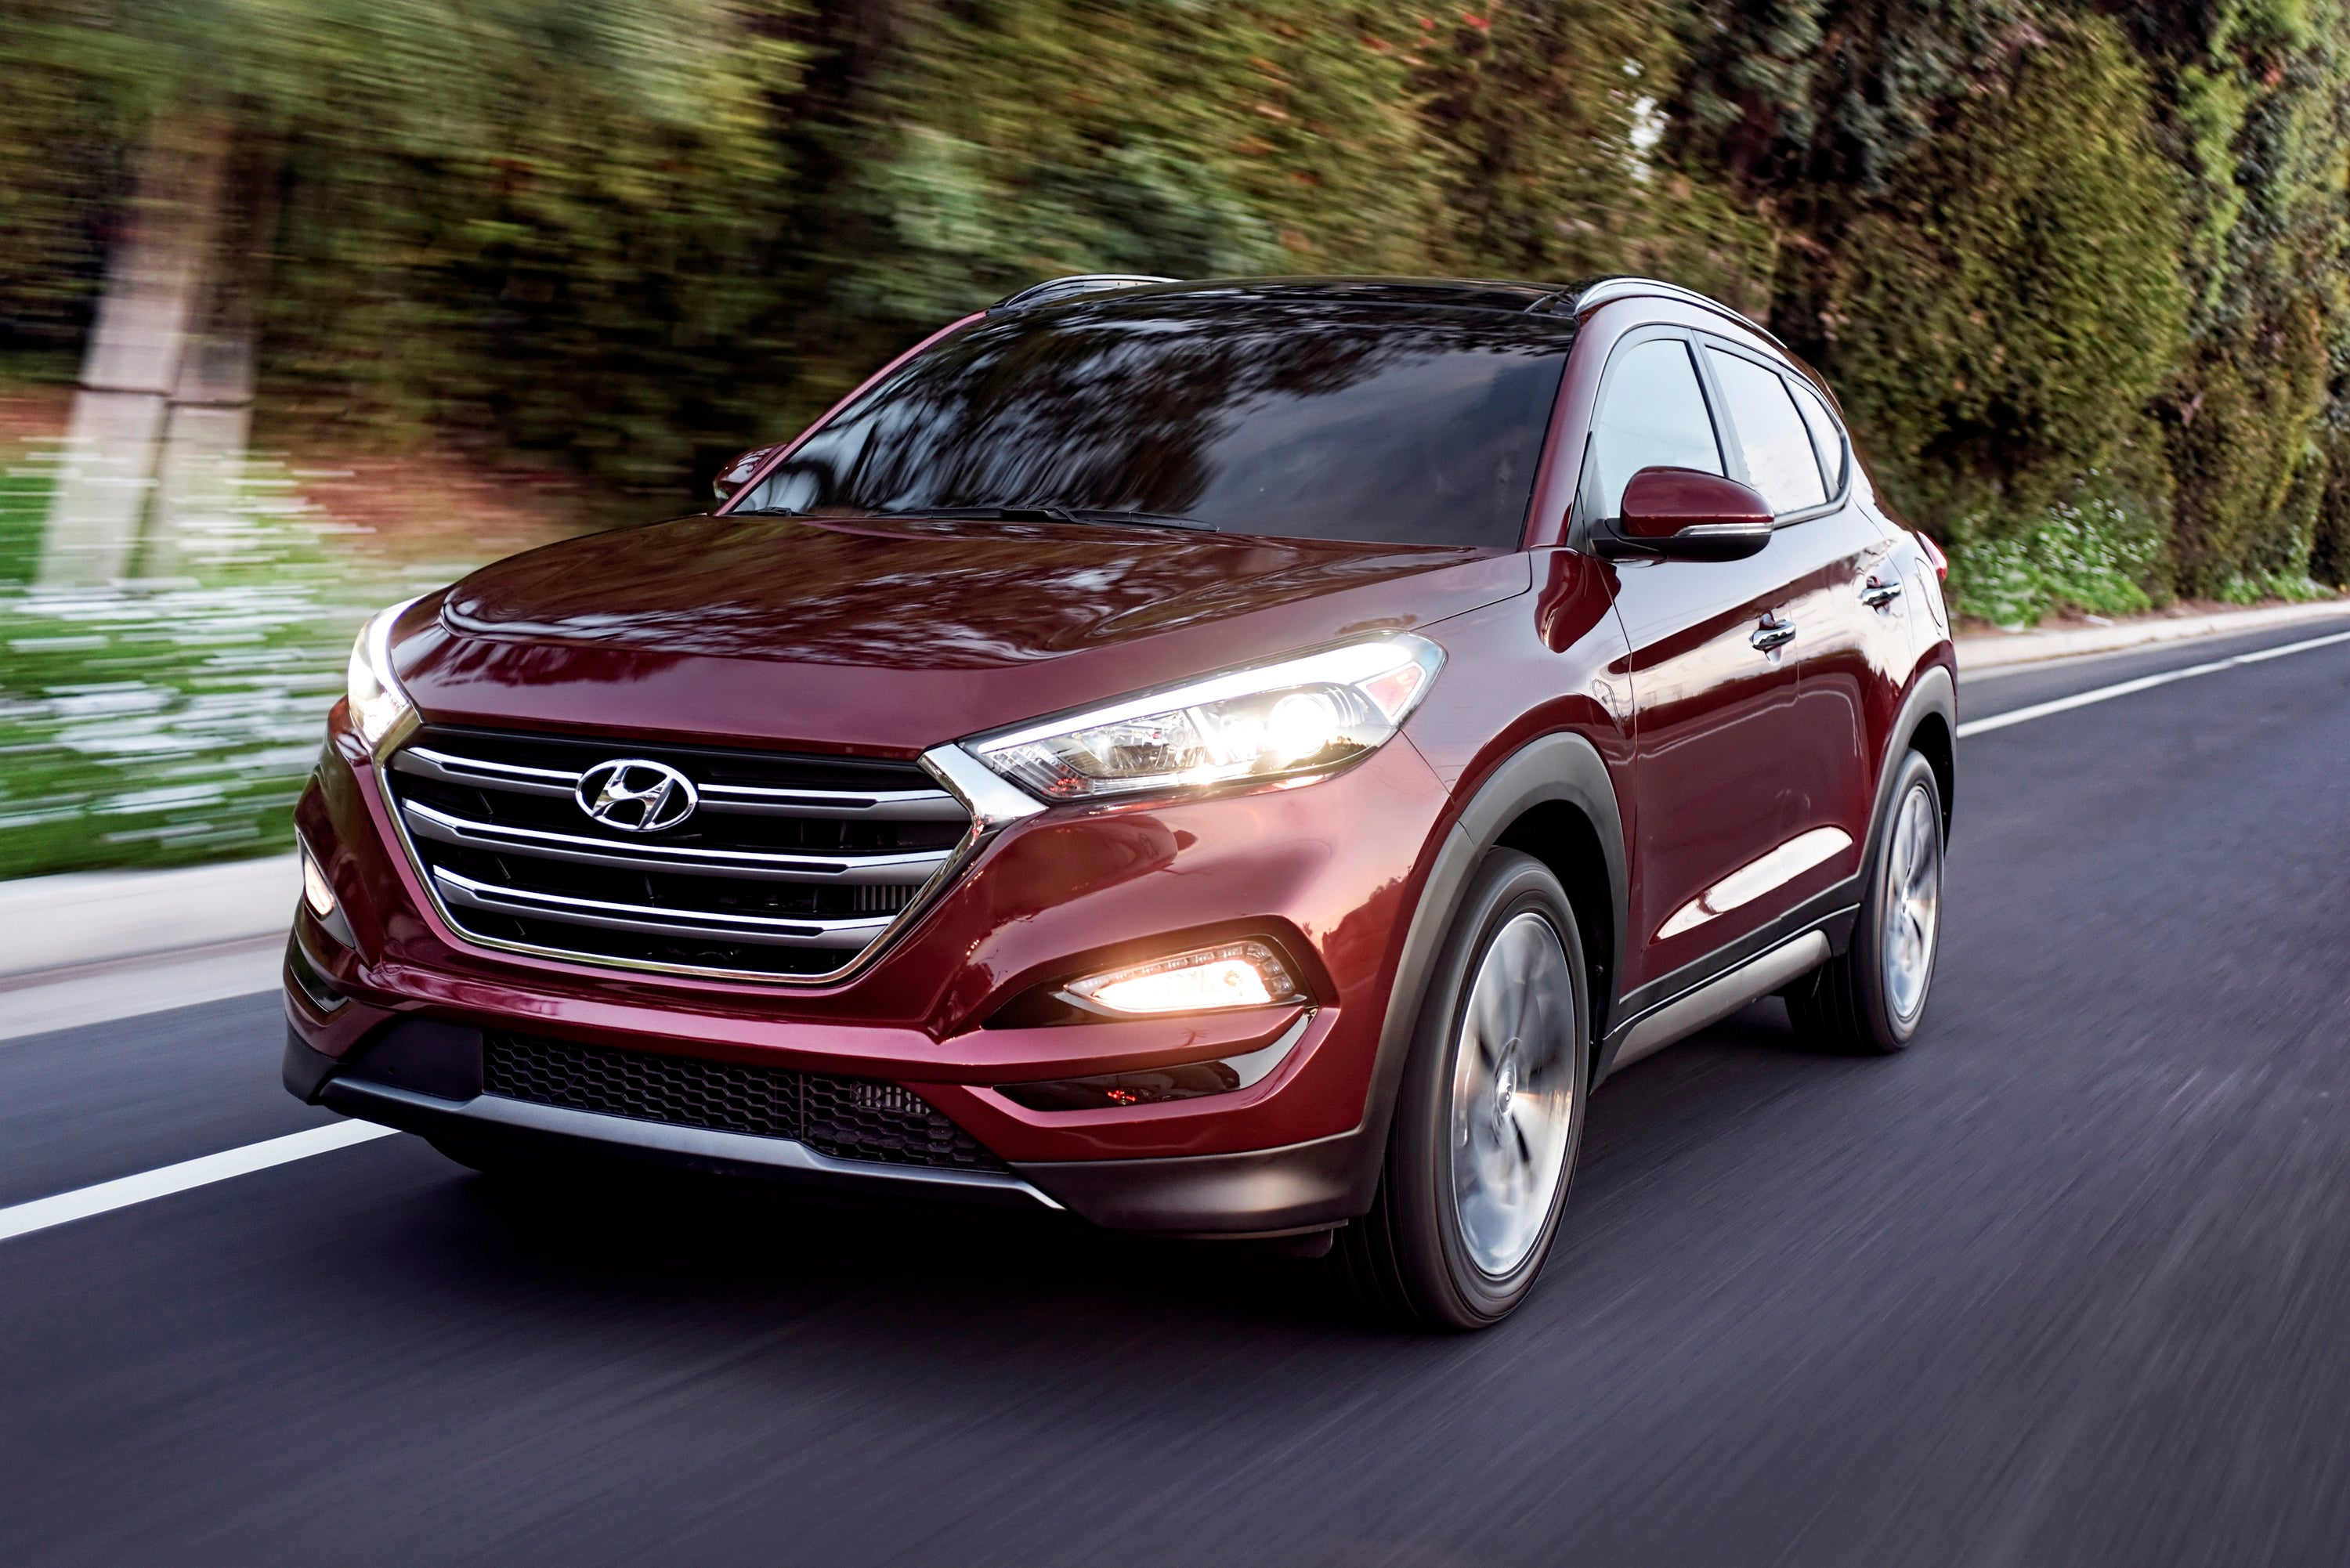 The Insurance Institute for Highway Safety said Tuesday that none of the 21 SUVs tested earned its highest ranking.